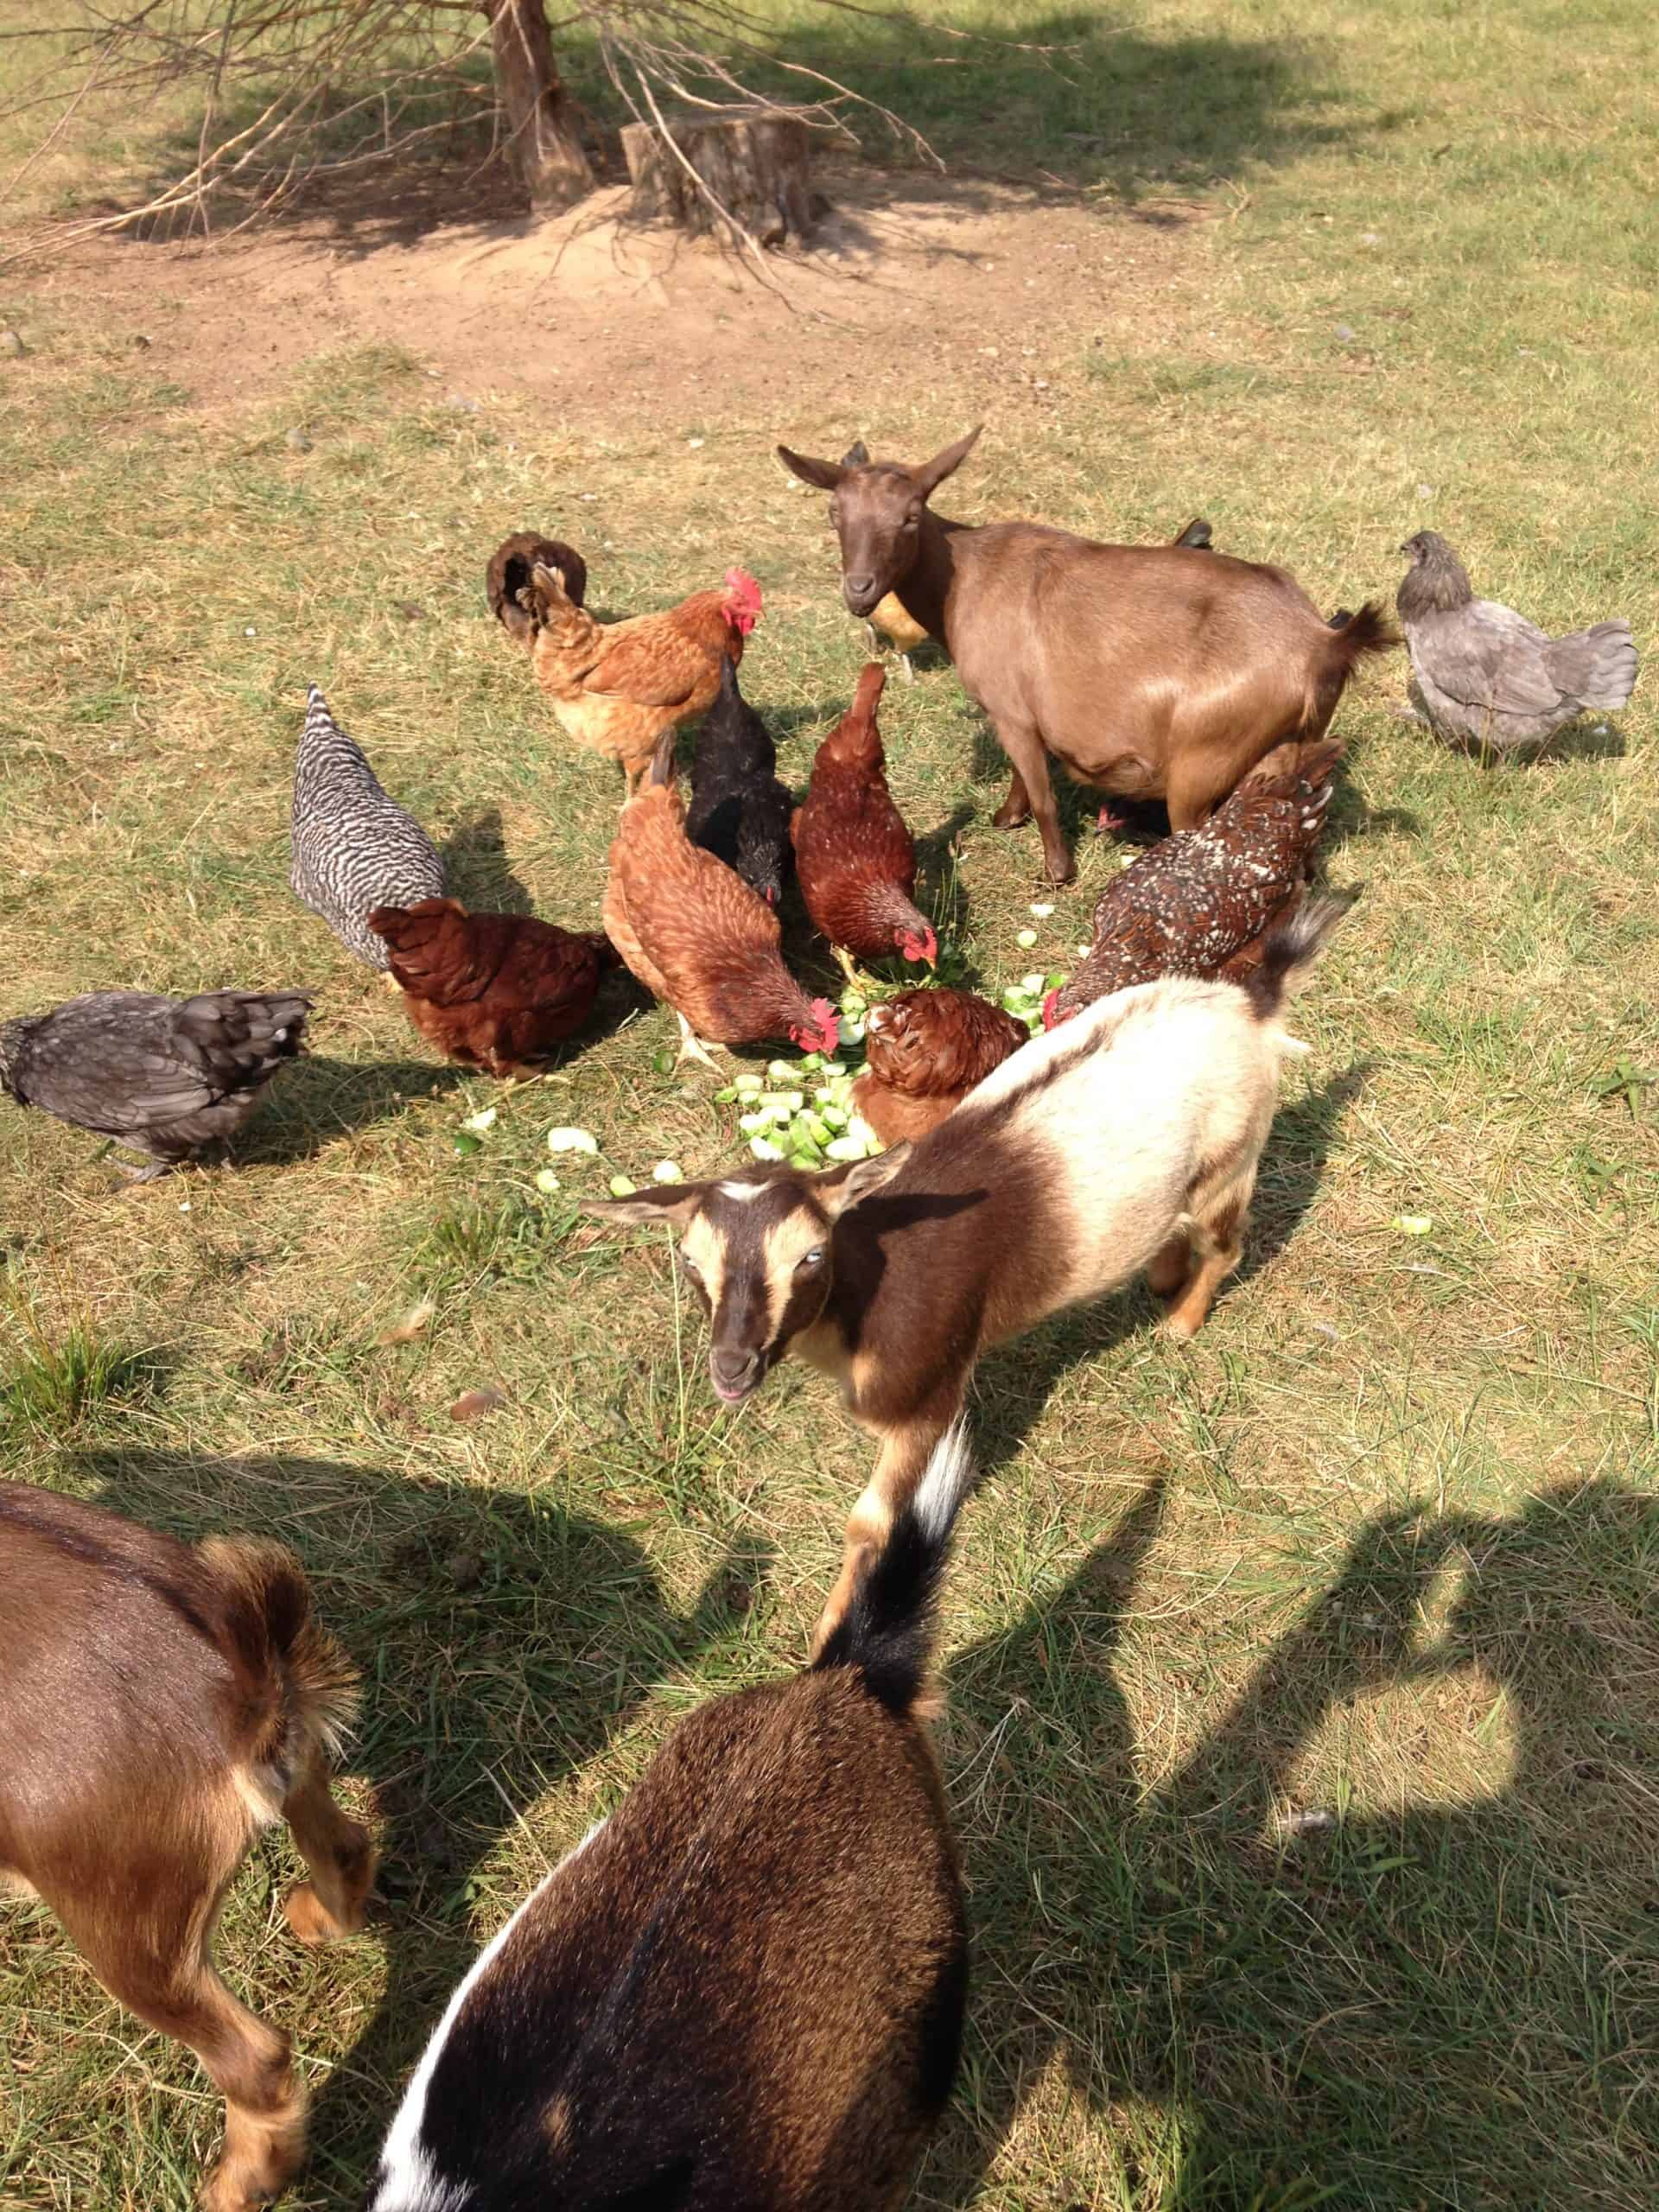 goats and chickens eating garden scraps